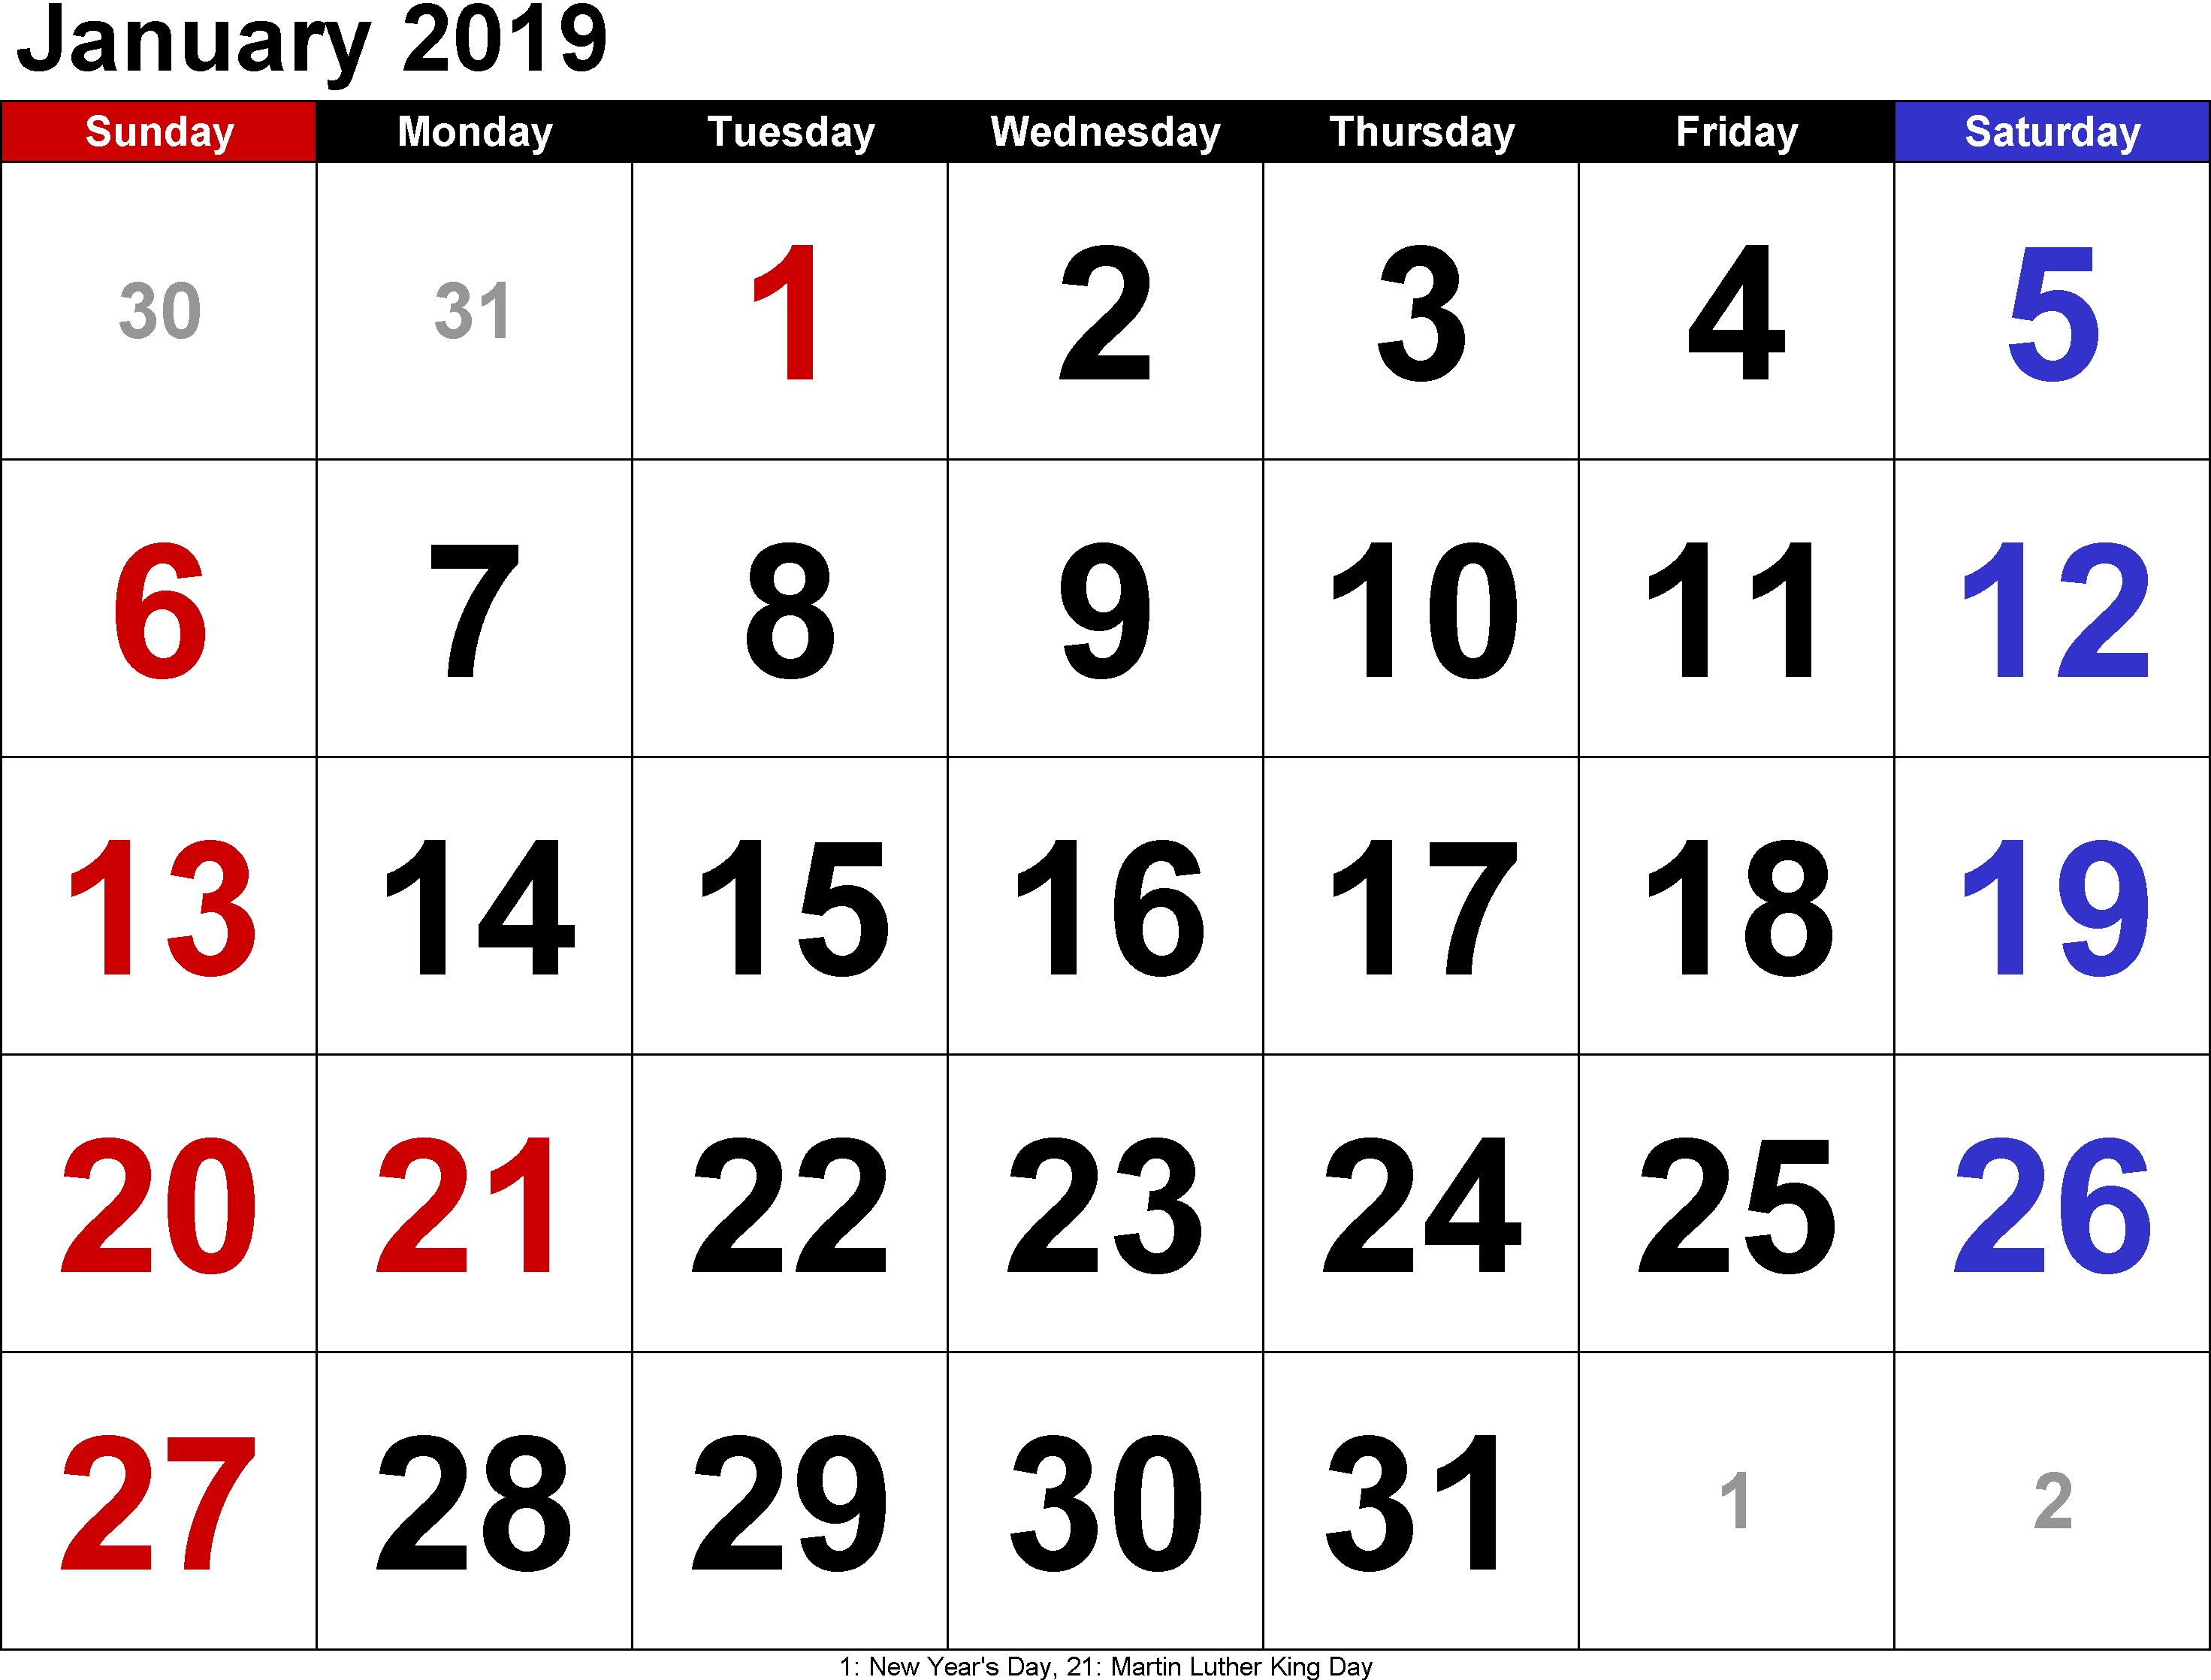 January 2019 Calendar Printable Free Templates Printable